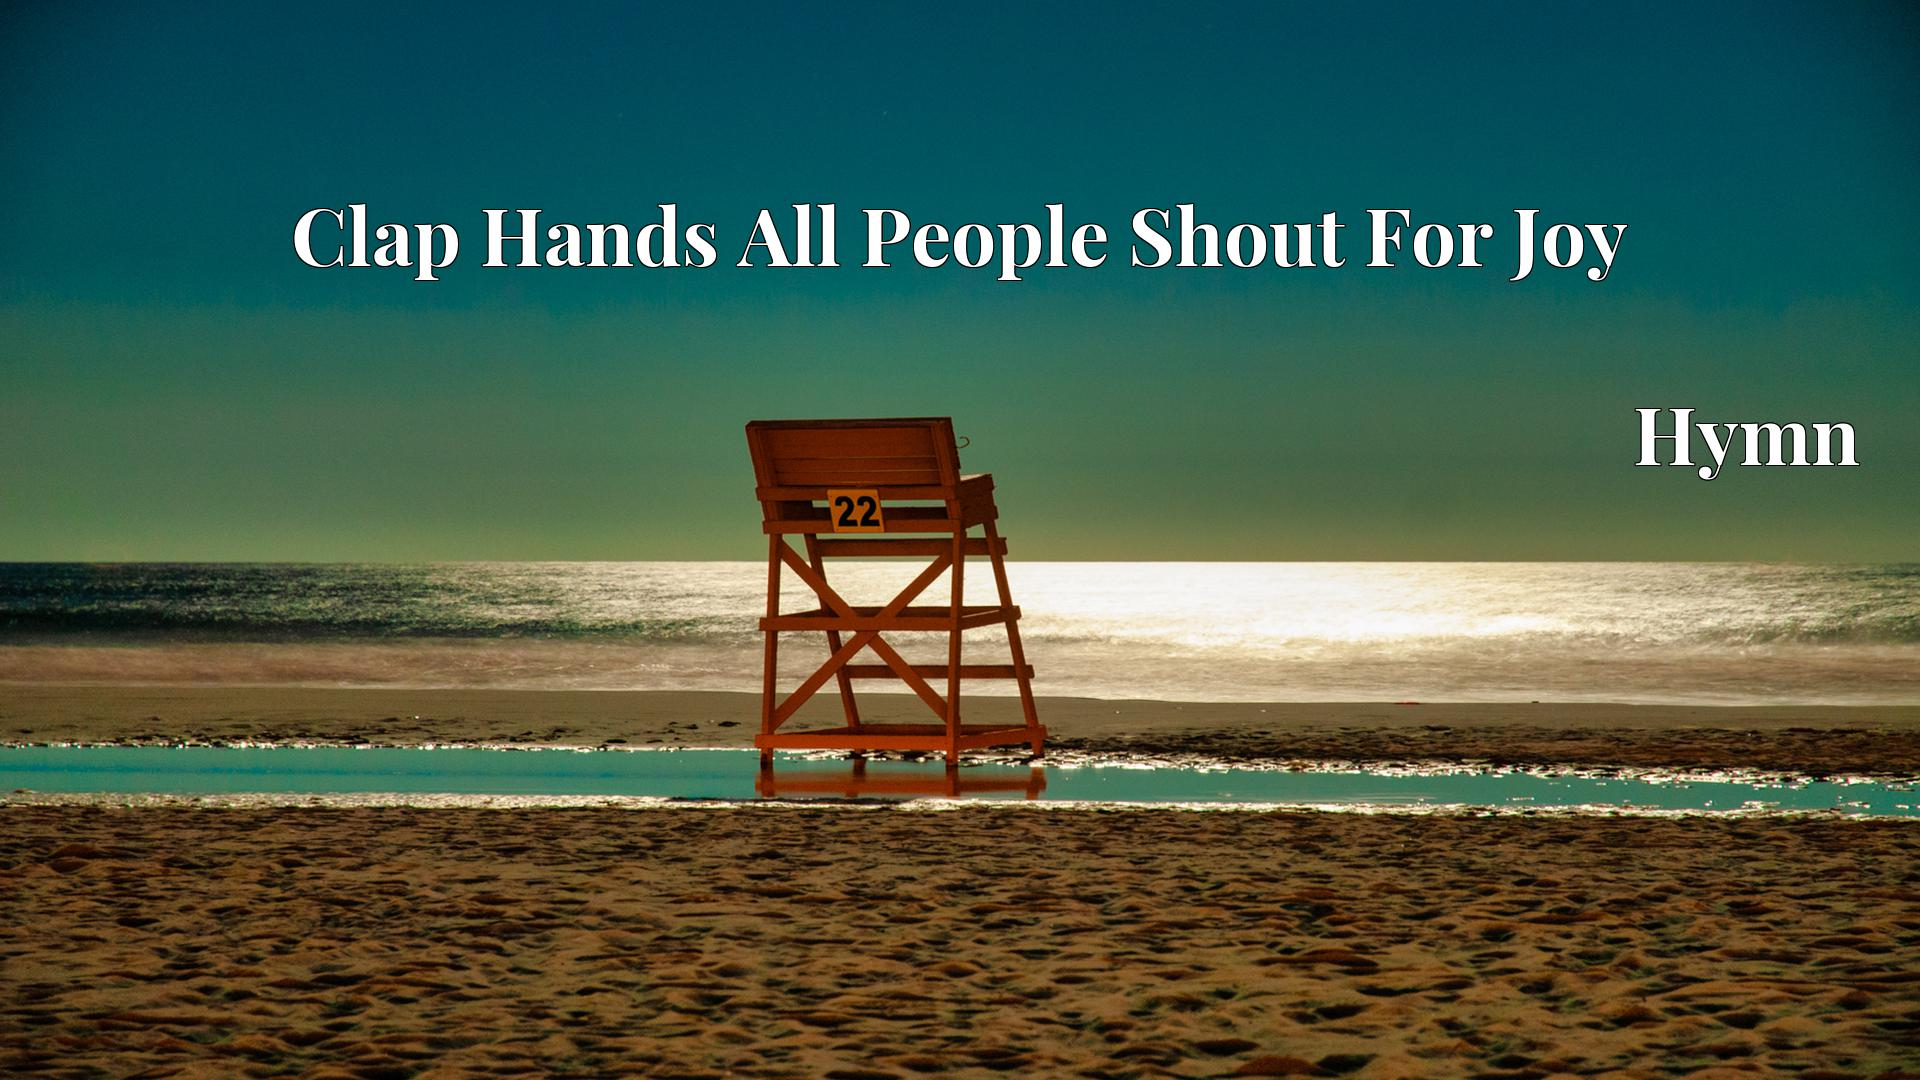 Clap Hands All People Shout For Joy - Hymn